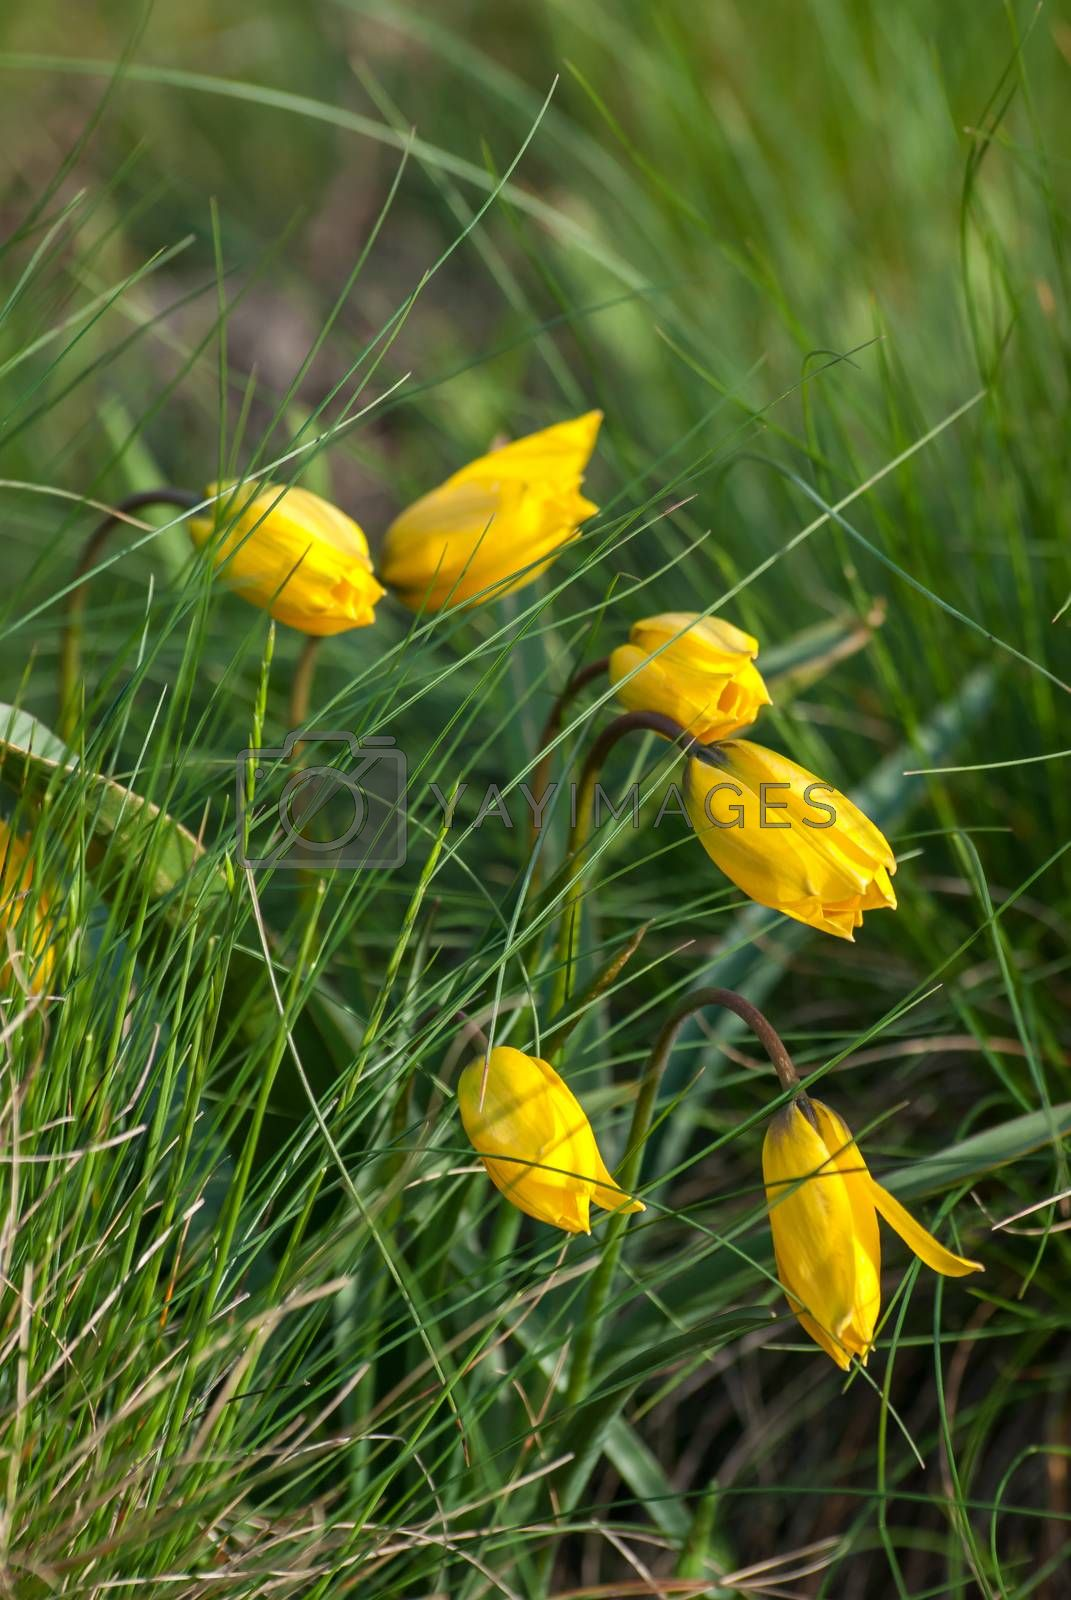 Wild yellow tulips flower in grass on meadow, outdoor